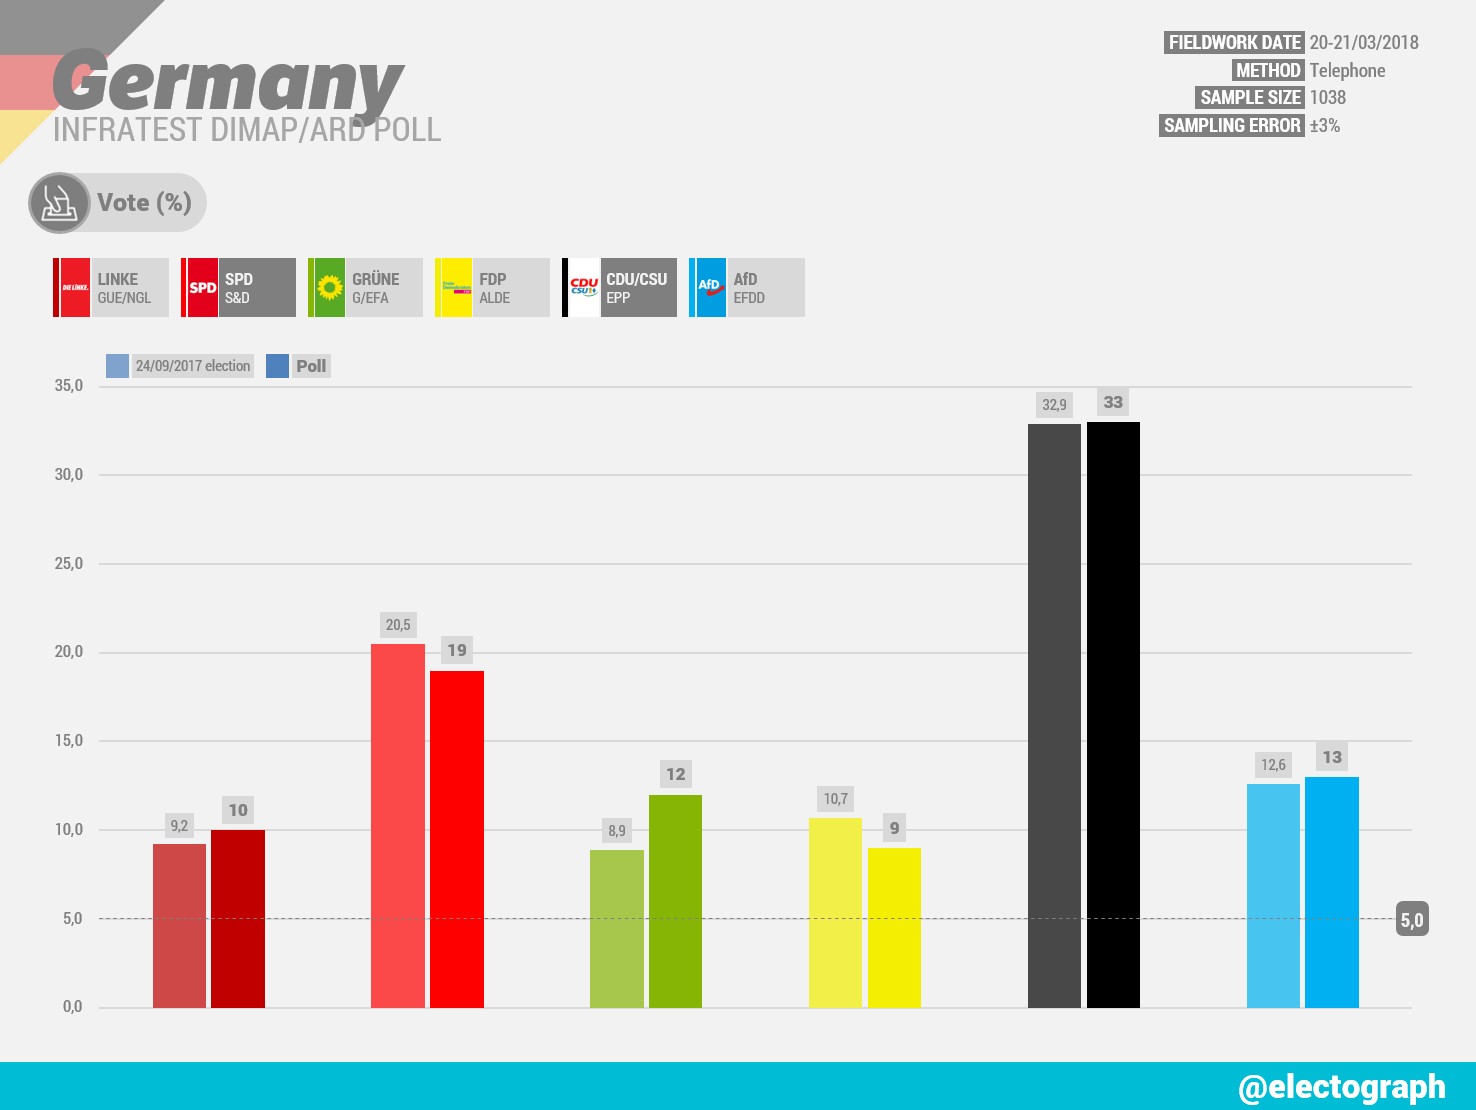 GERMANY Infratest dimap poll chart for ARD, March 2018